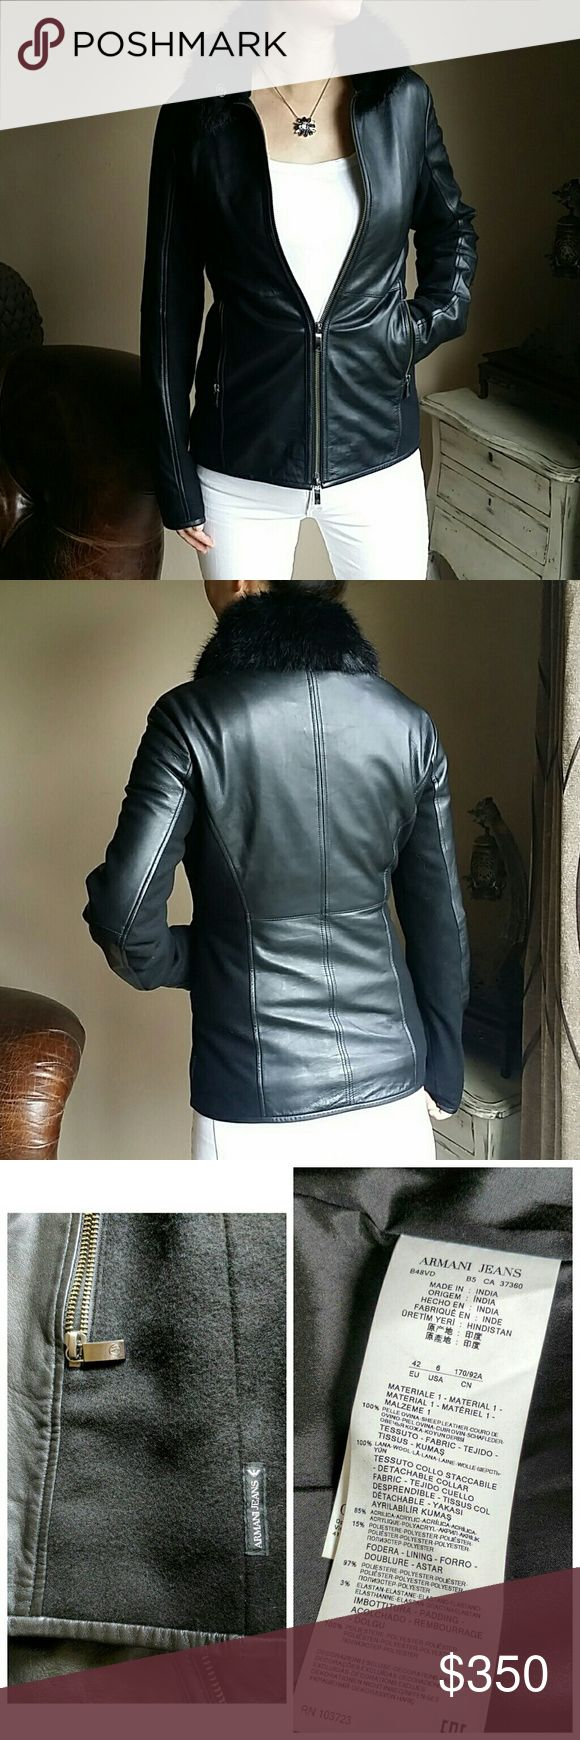 Armani Jeans Leather Jacket Beatiful fited Armani Jeans leather jacket with wool panel. Very soft. In great condition. Removable collar. Euro size 42.  Open to offers. Armani Jeans Jackets & Coats